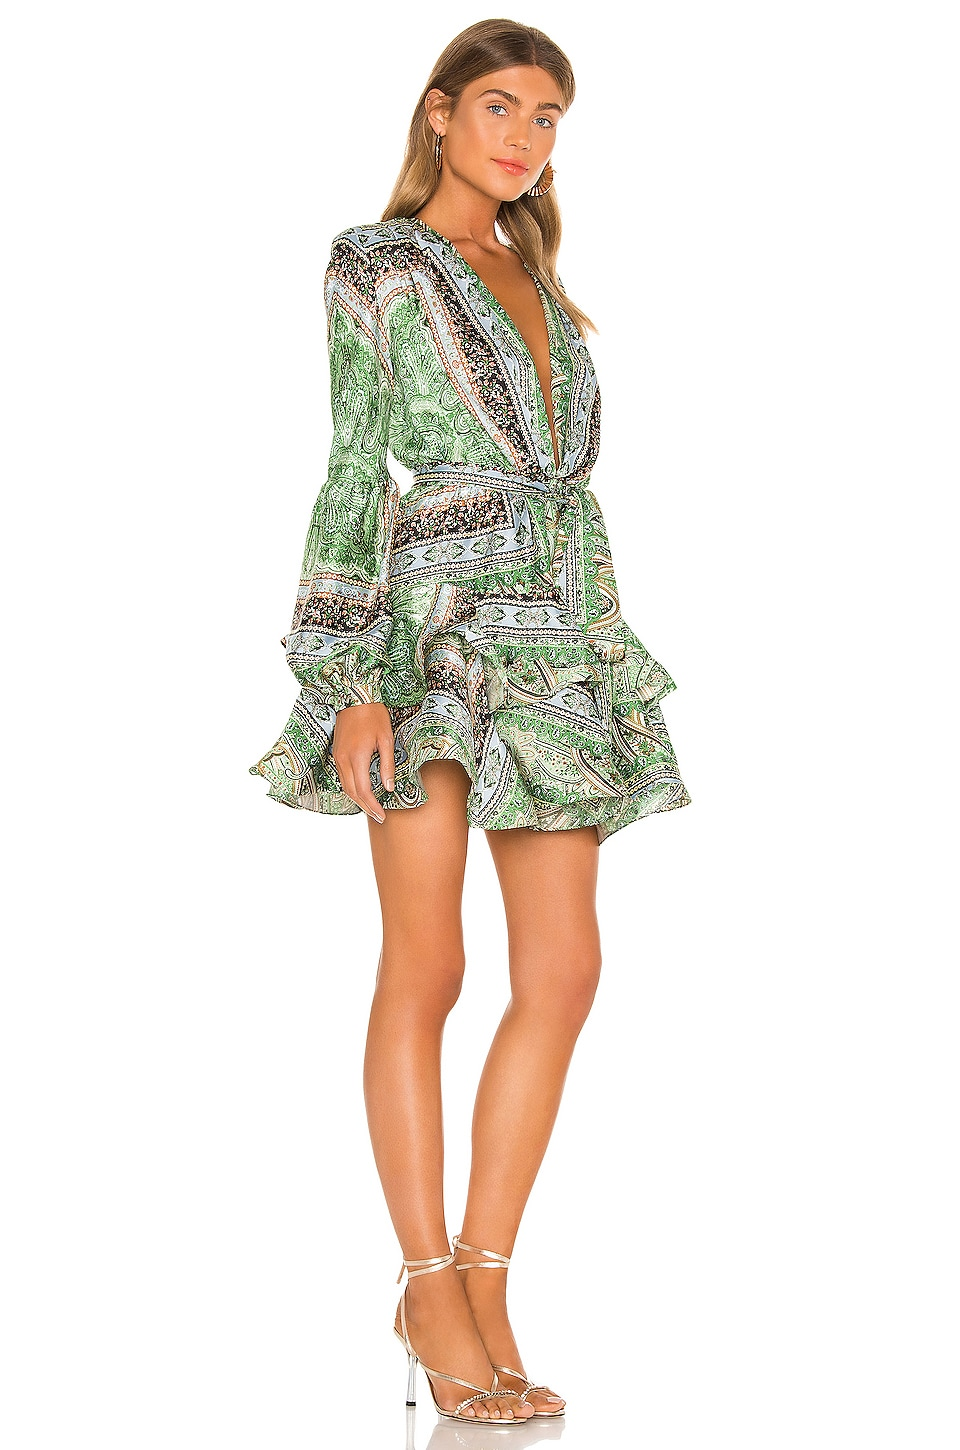 Bedouin Mini Dress, view 2, click to view large image.